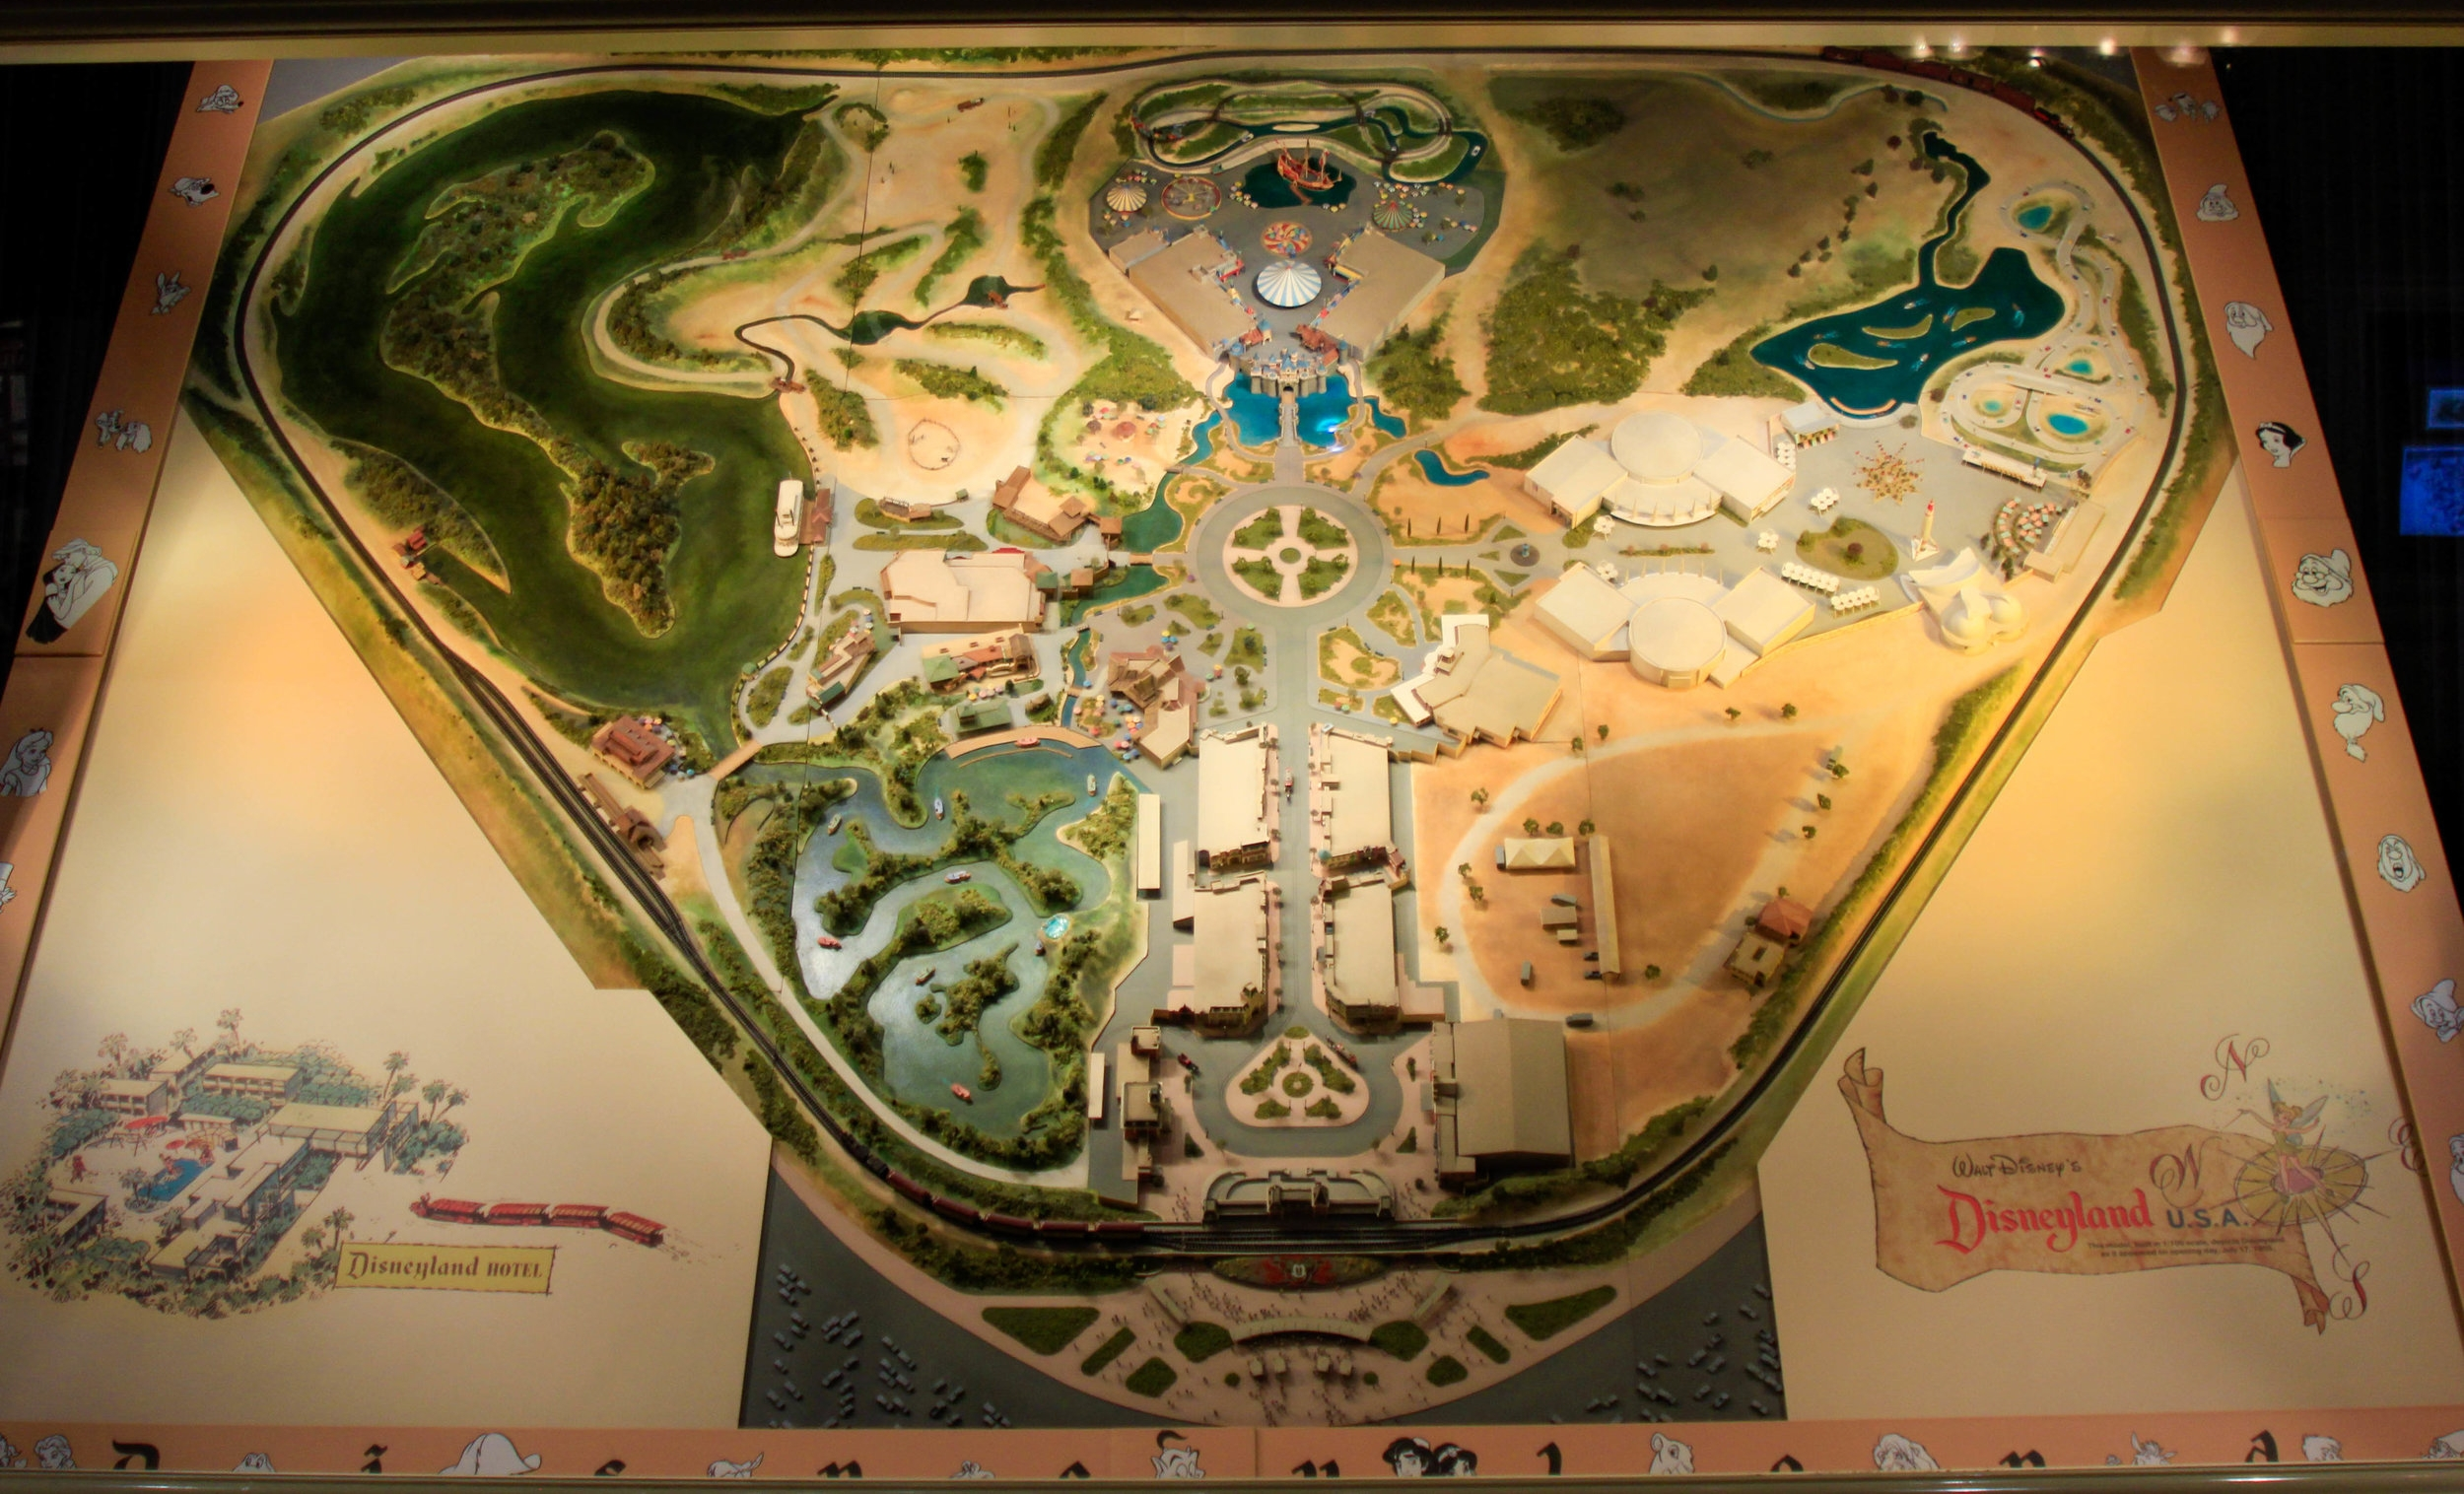 Early Disneyland Map on Display at the Opera House